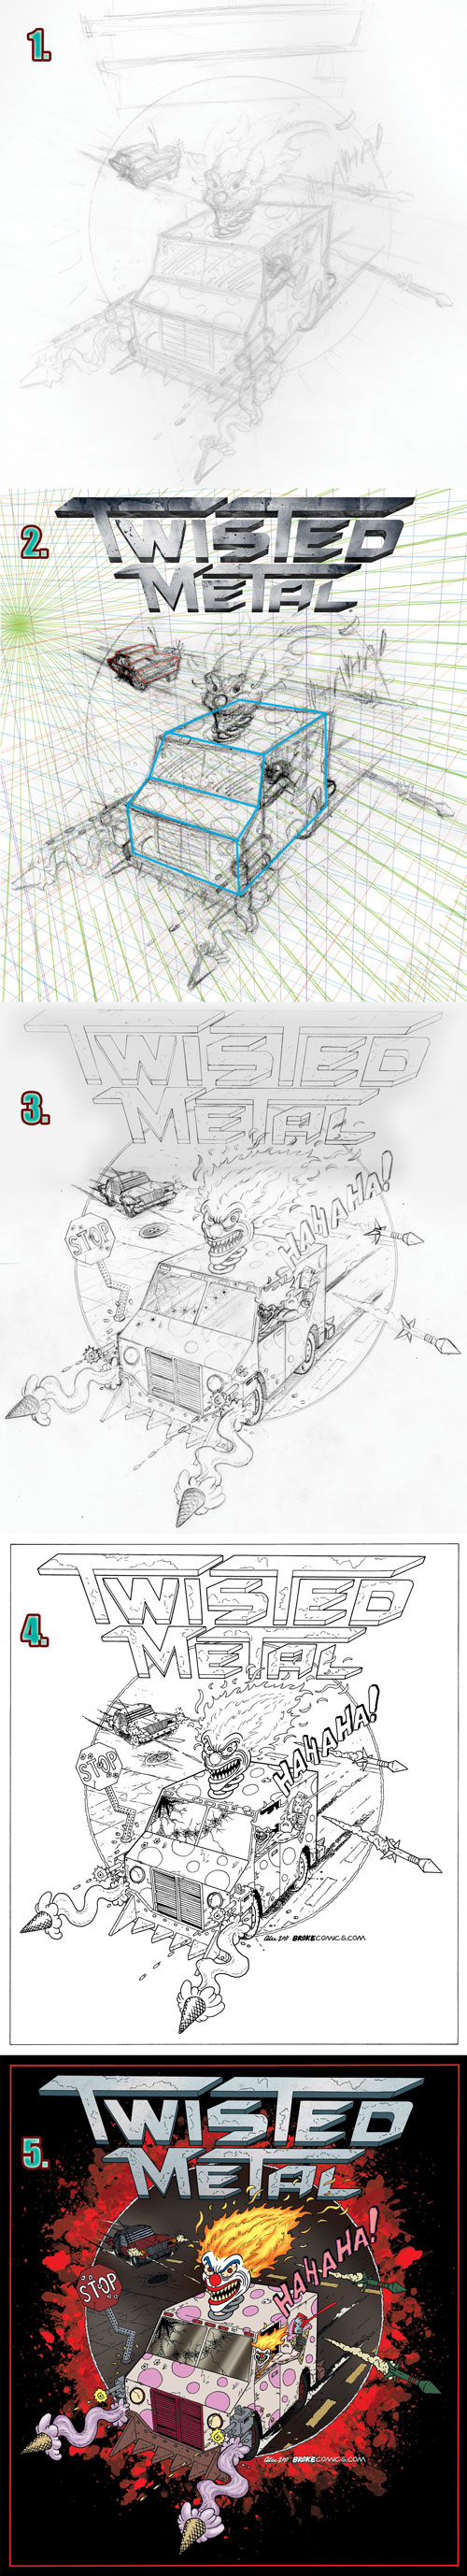 Twisted Metal Walkthrough